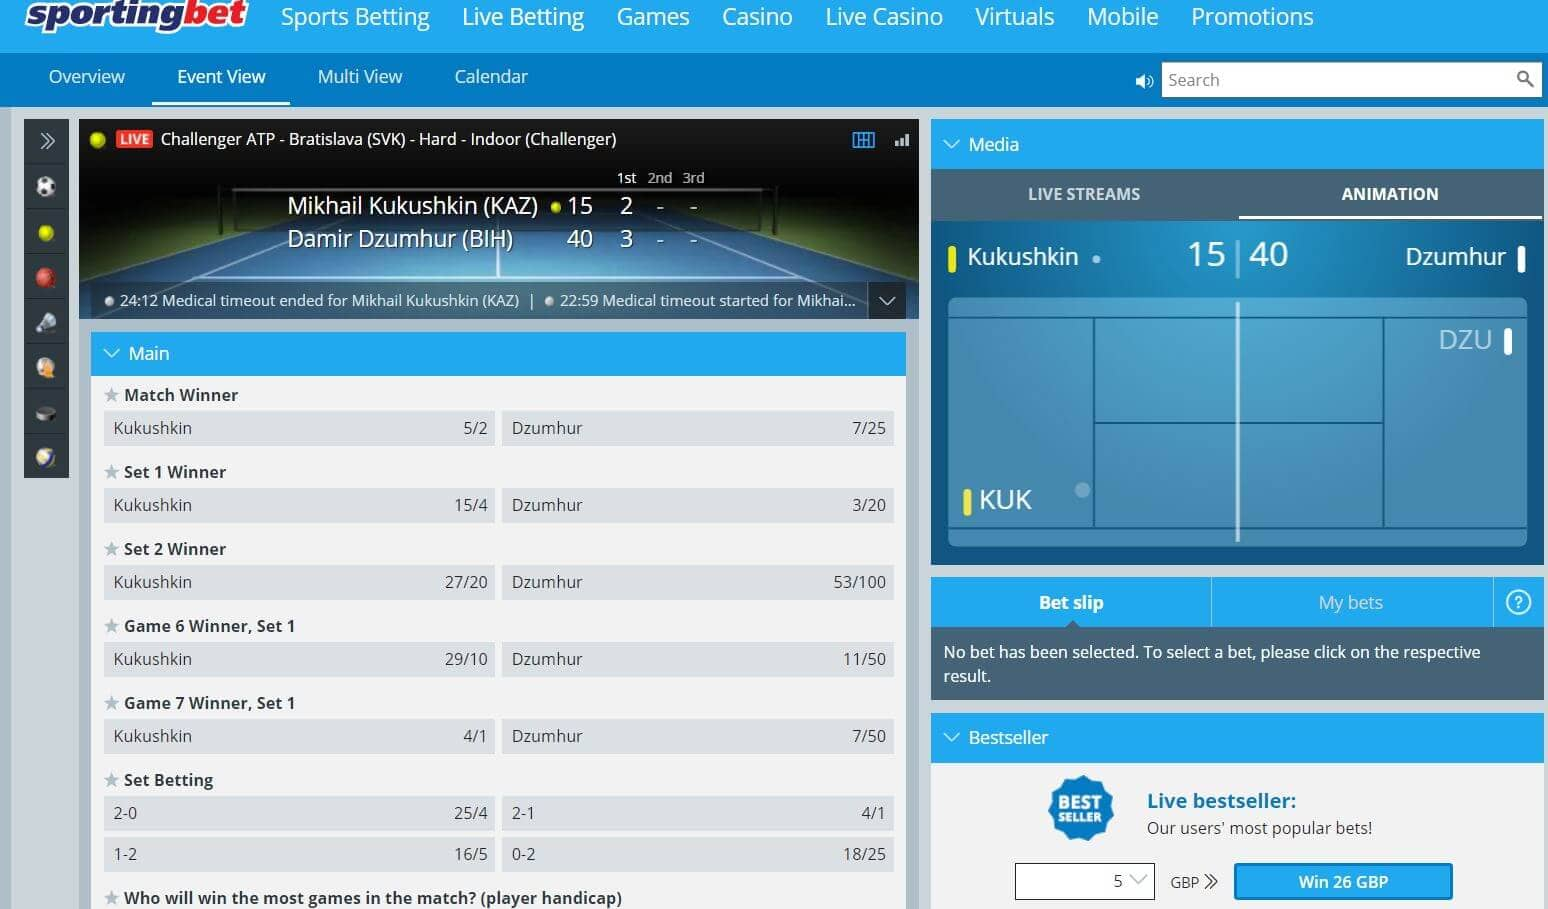 'Sportingbet in-play area and tennis markets'